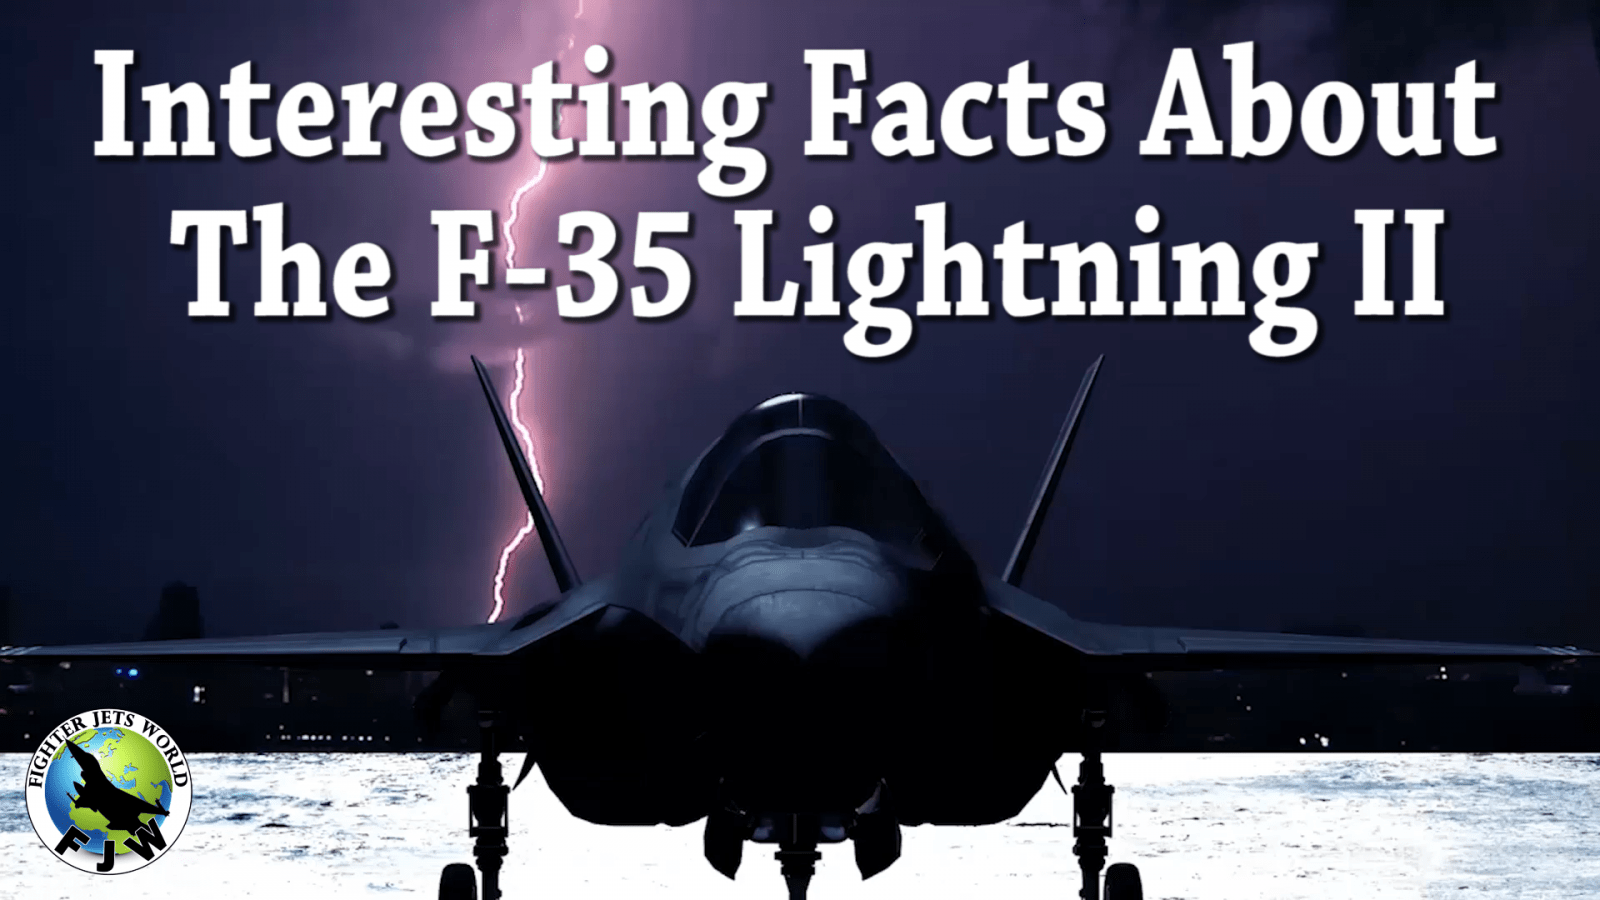 Interesting Facts About The F-35 Lightning II Stealth Fighter Jet a